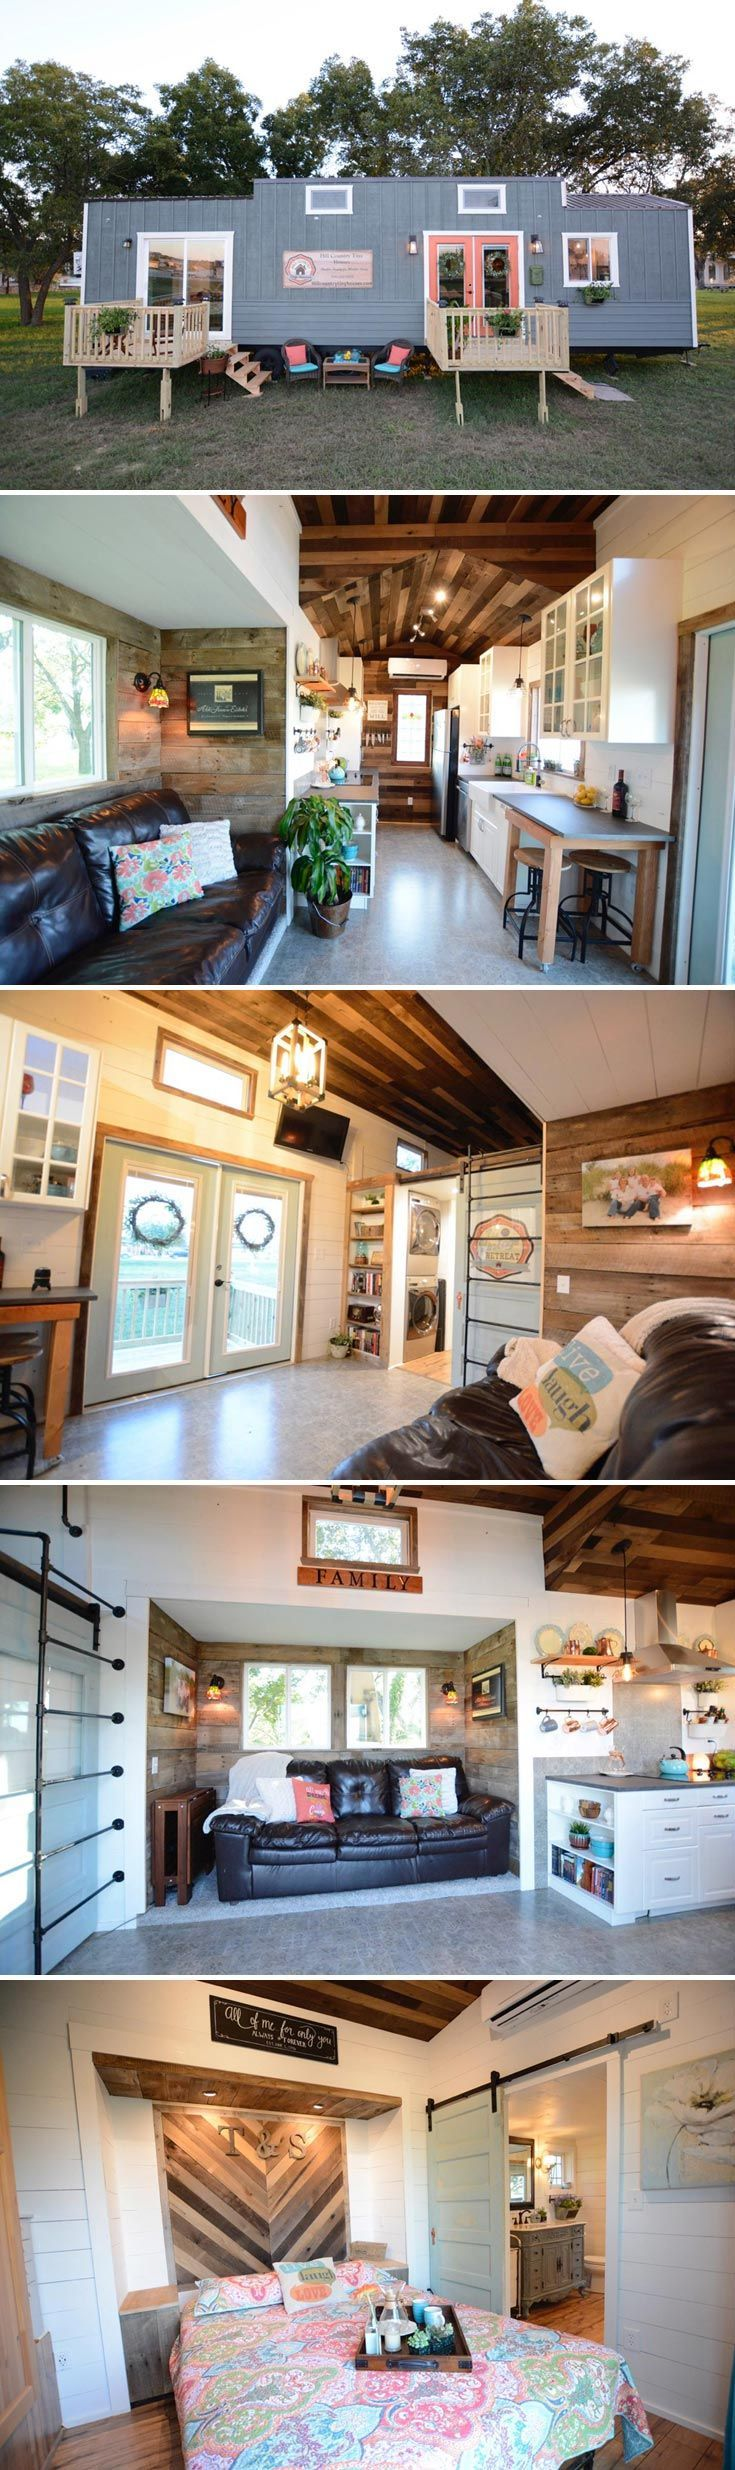 Vintage retreat by hill country tiny houses pinterest for Tiny house with main floor bedroom